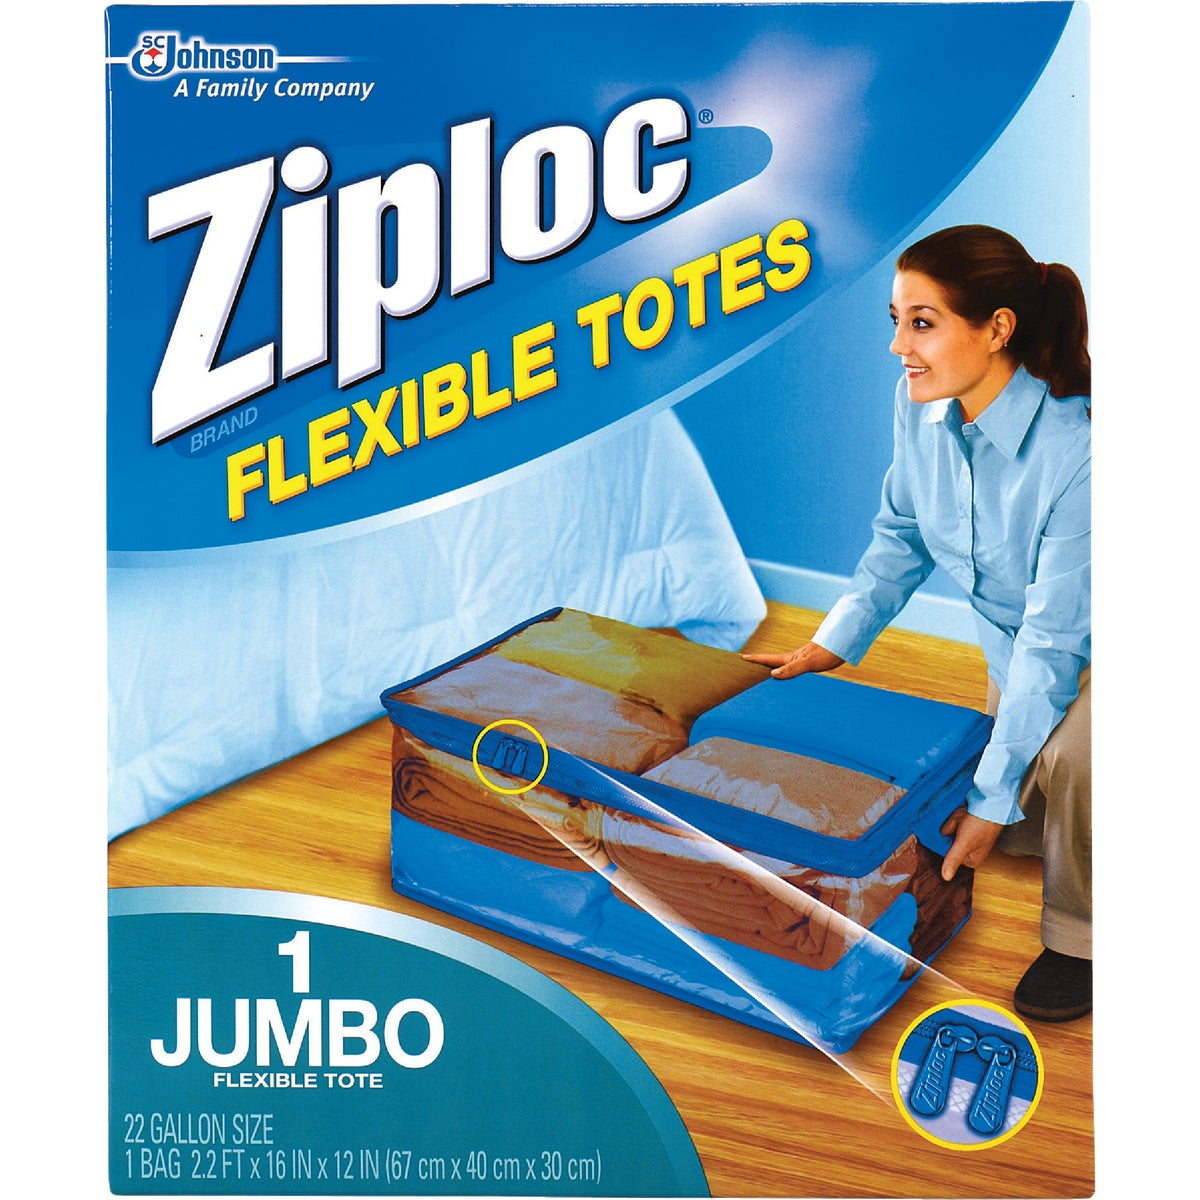 XXL ZIPLOC FLEX TOTE - 70162 by Sc Johnson